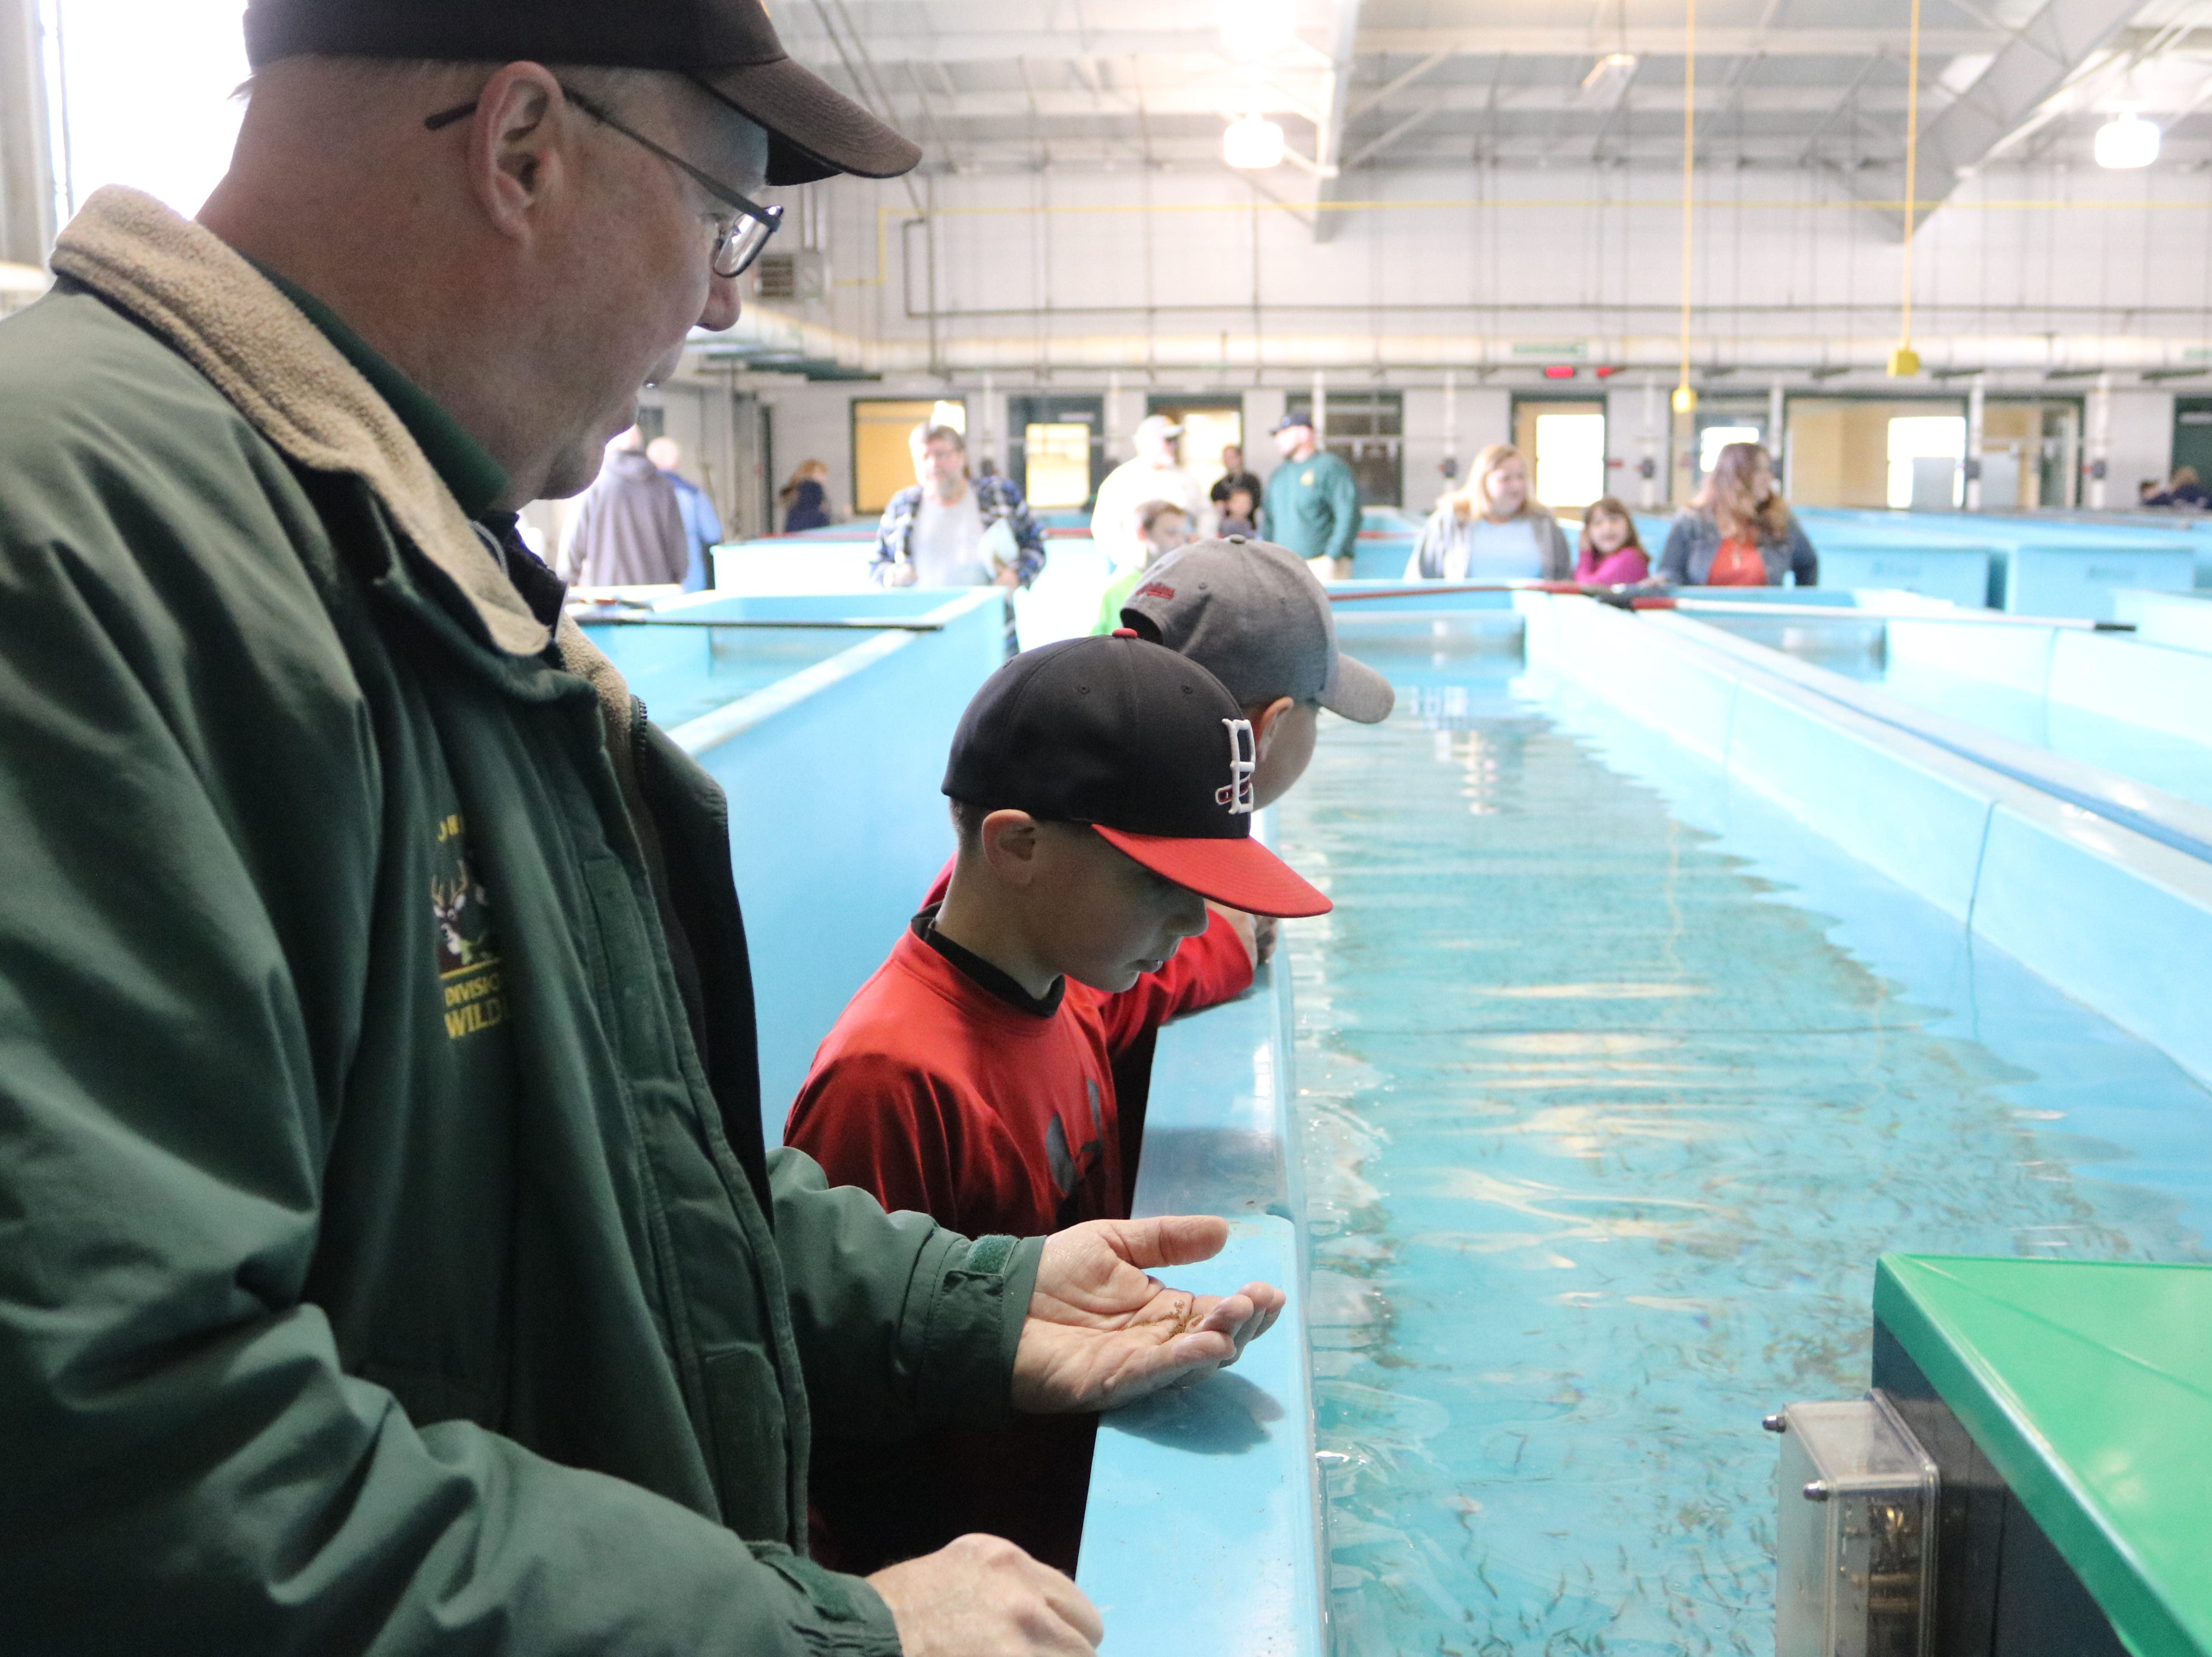 Kevin Kayle, administrator of the state fish hatchery program, speaks with the children during the open house in Castalia on Saturday.